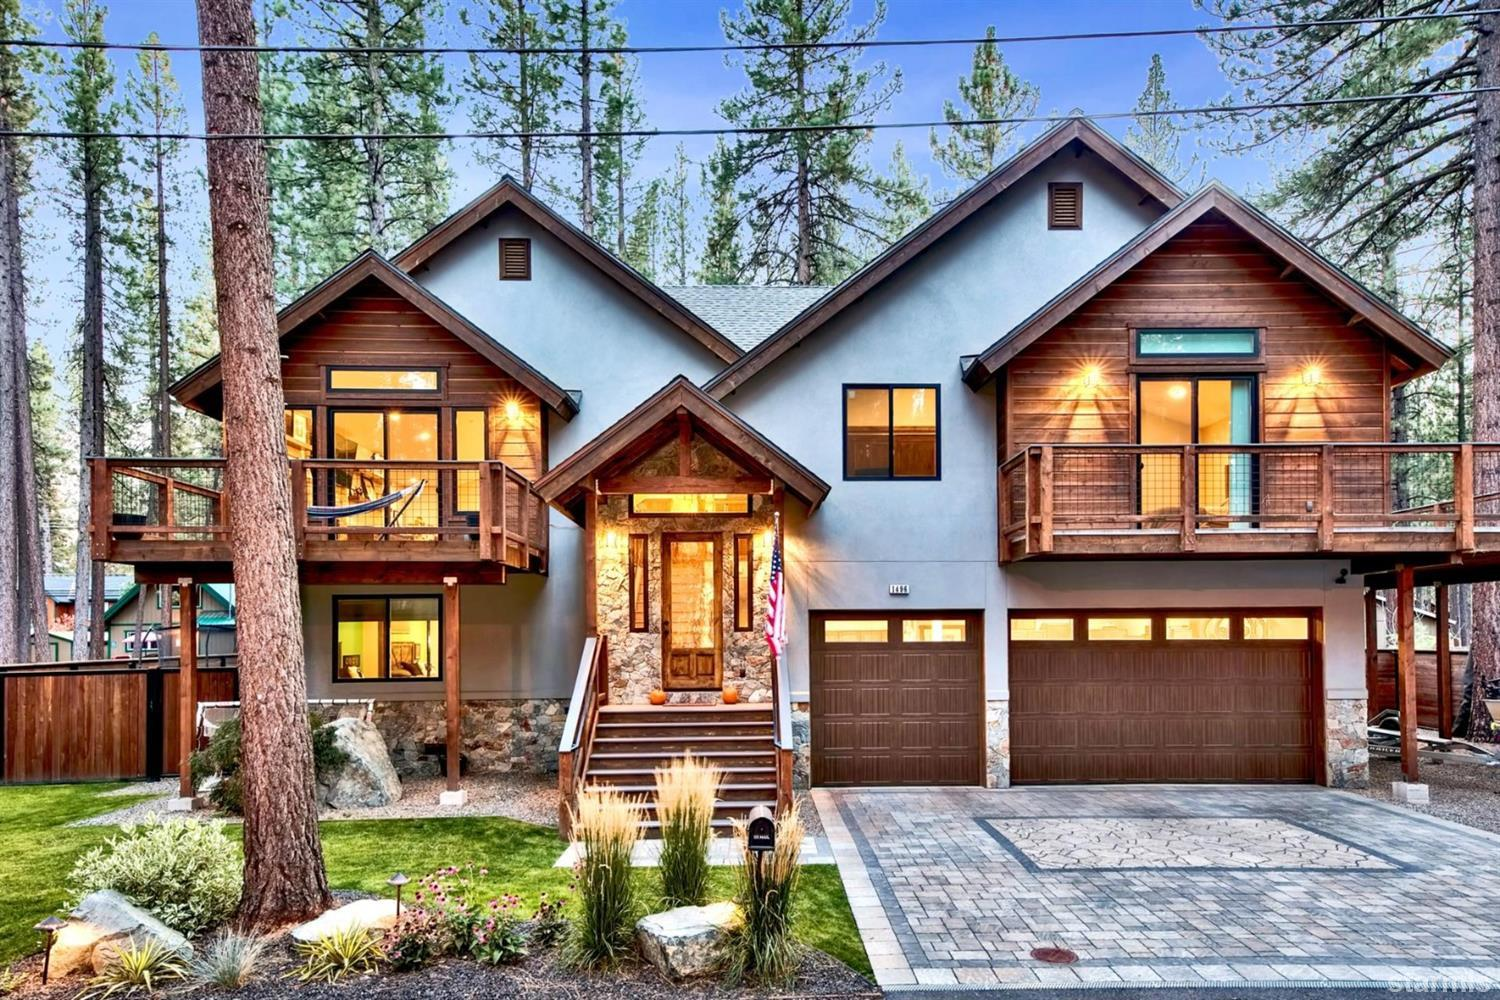 Image for 1496 Horace Greeley Avenue, South Lake Tahoe, CA 96150